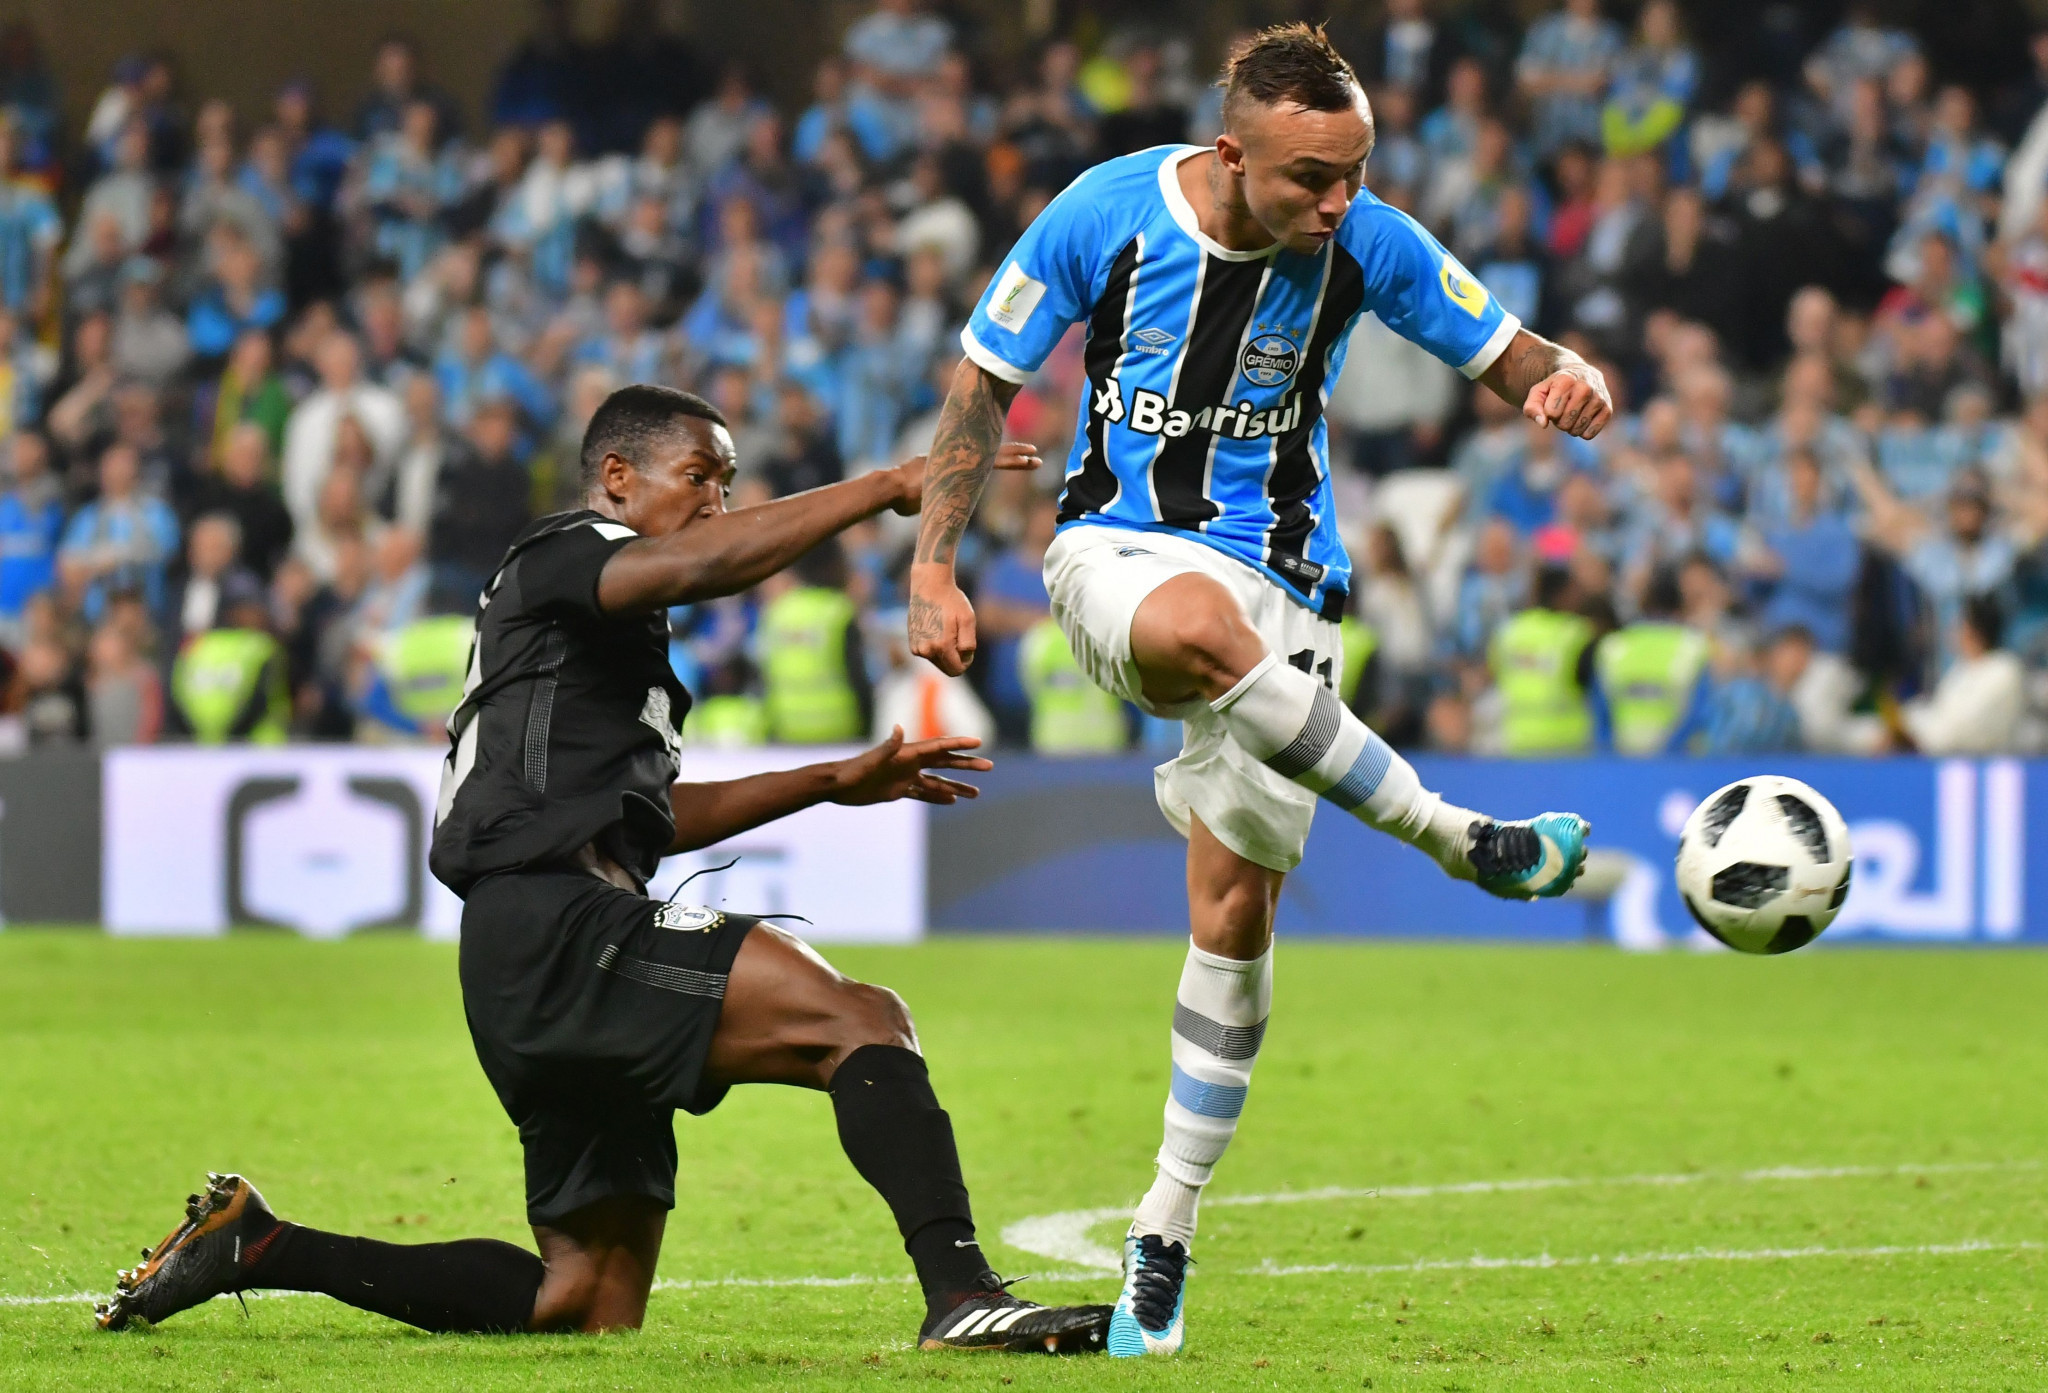 Gremio beat Pachuca to book place in FIFA Club World Cup final